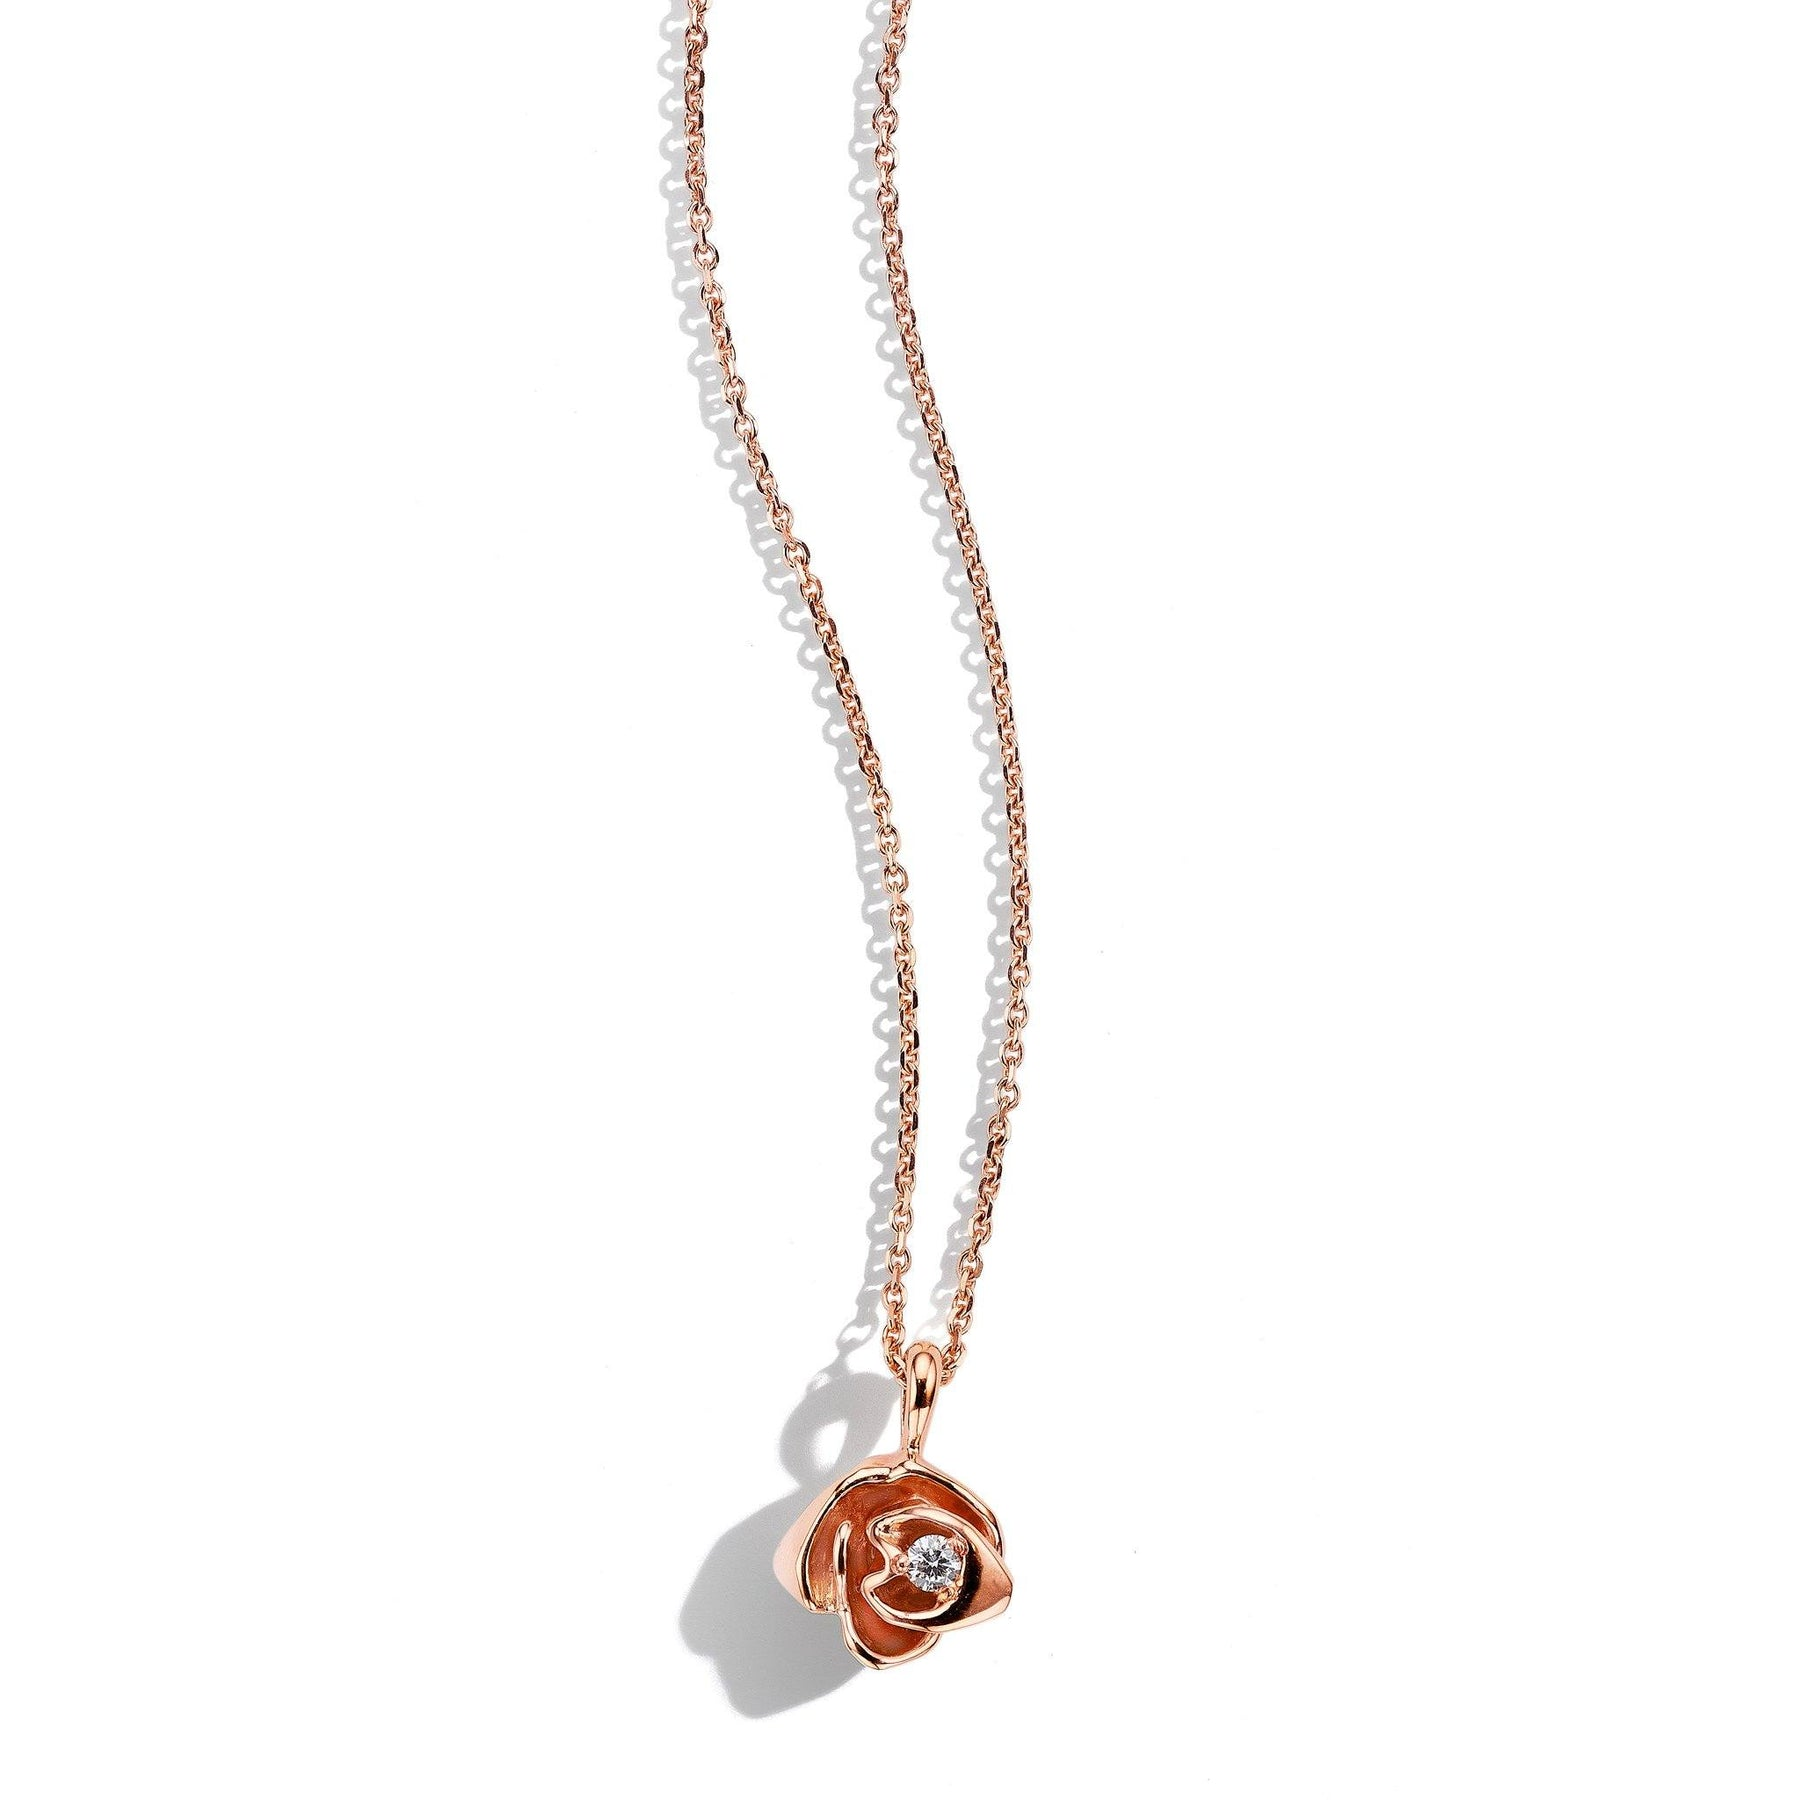 Mimi-So-Wonderland-Rose-Pendant-Necklace_18k Rose Gold